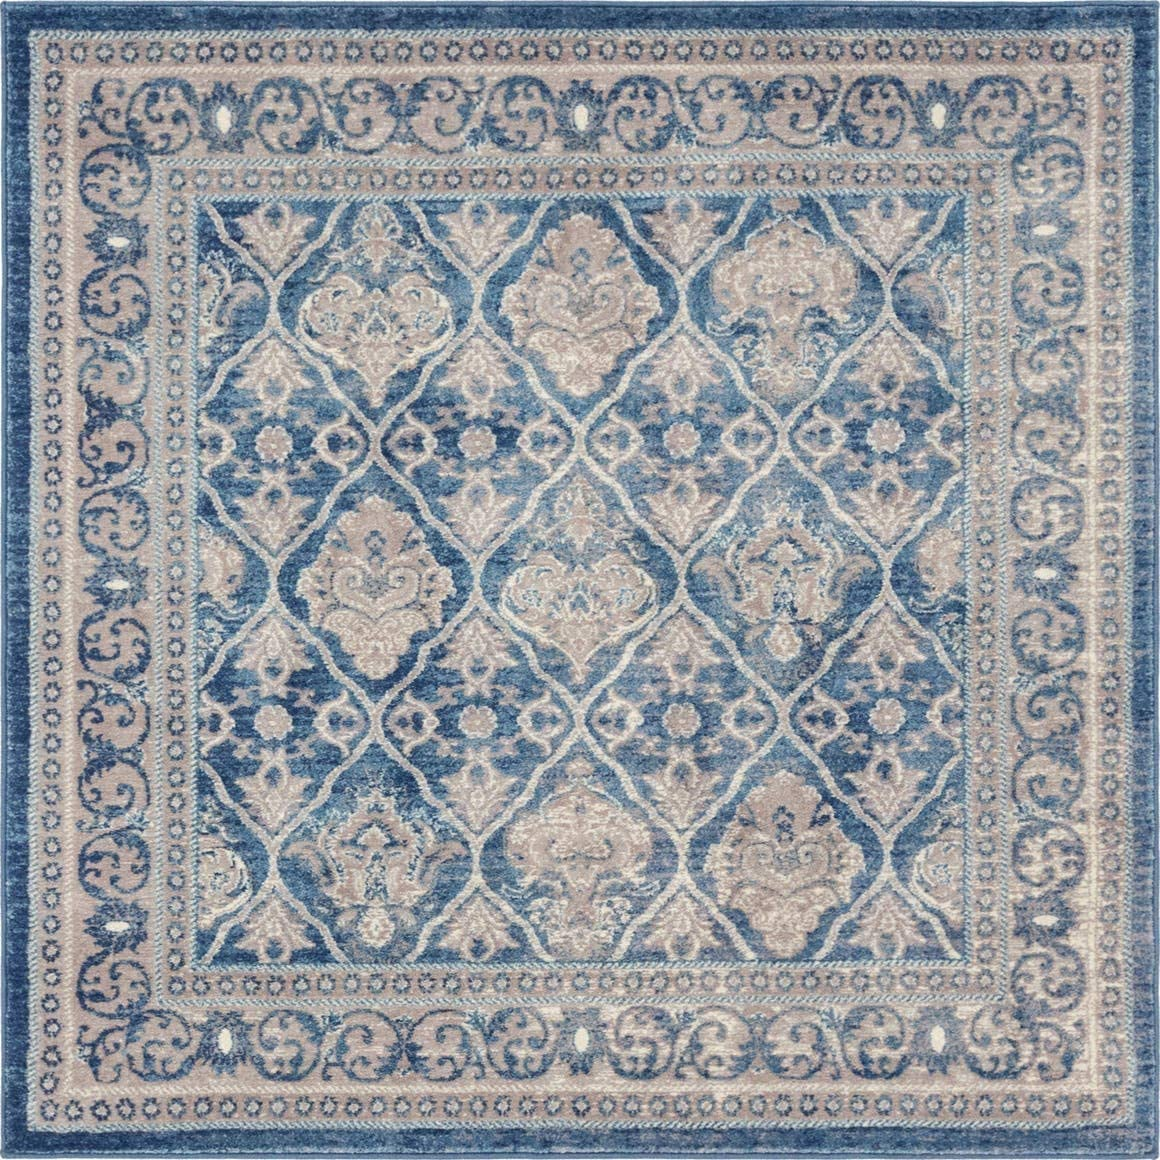 Unique Loom Salzburg Collection Traditional Oriental Light Blue Square Rug 5 0 x 5 0